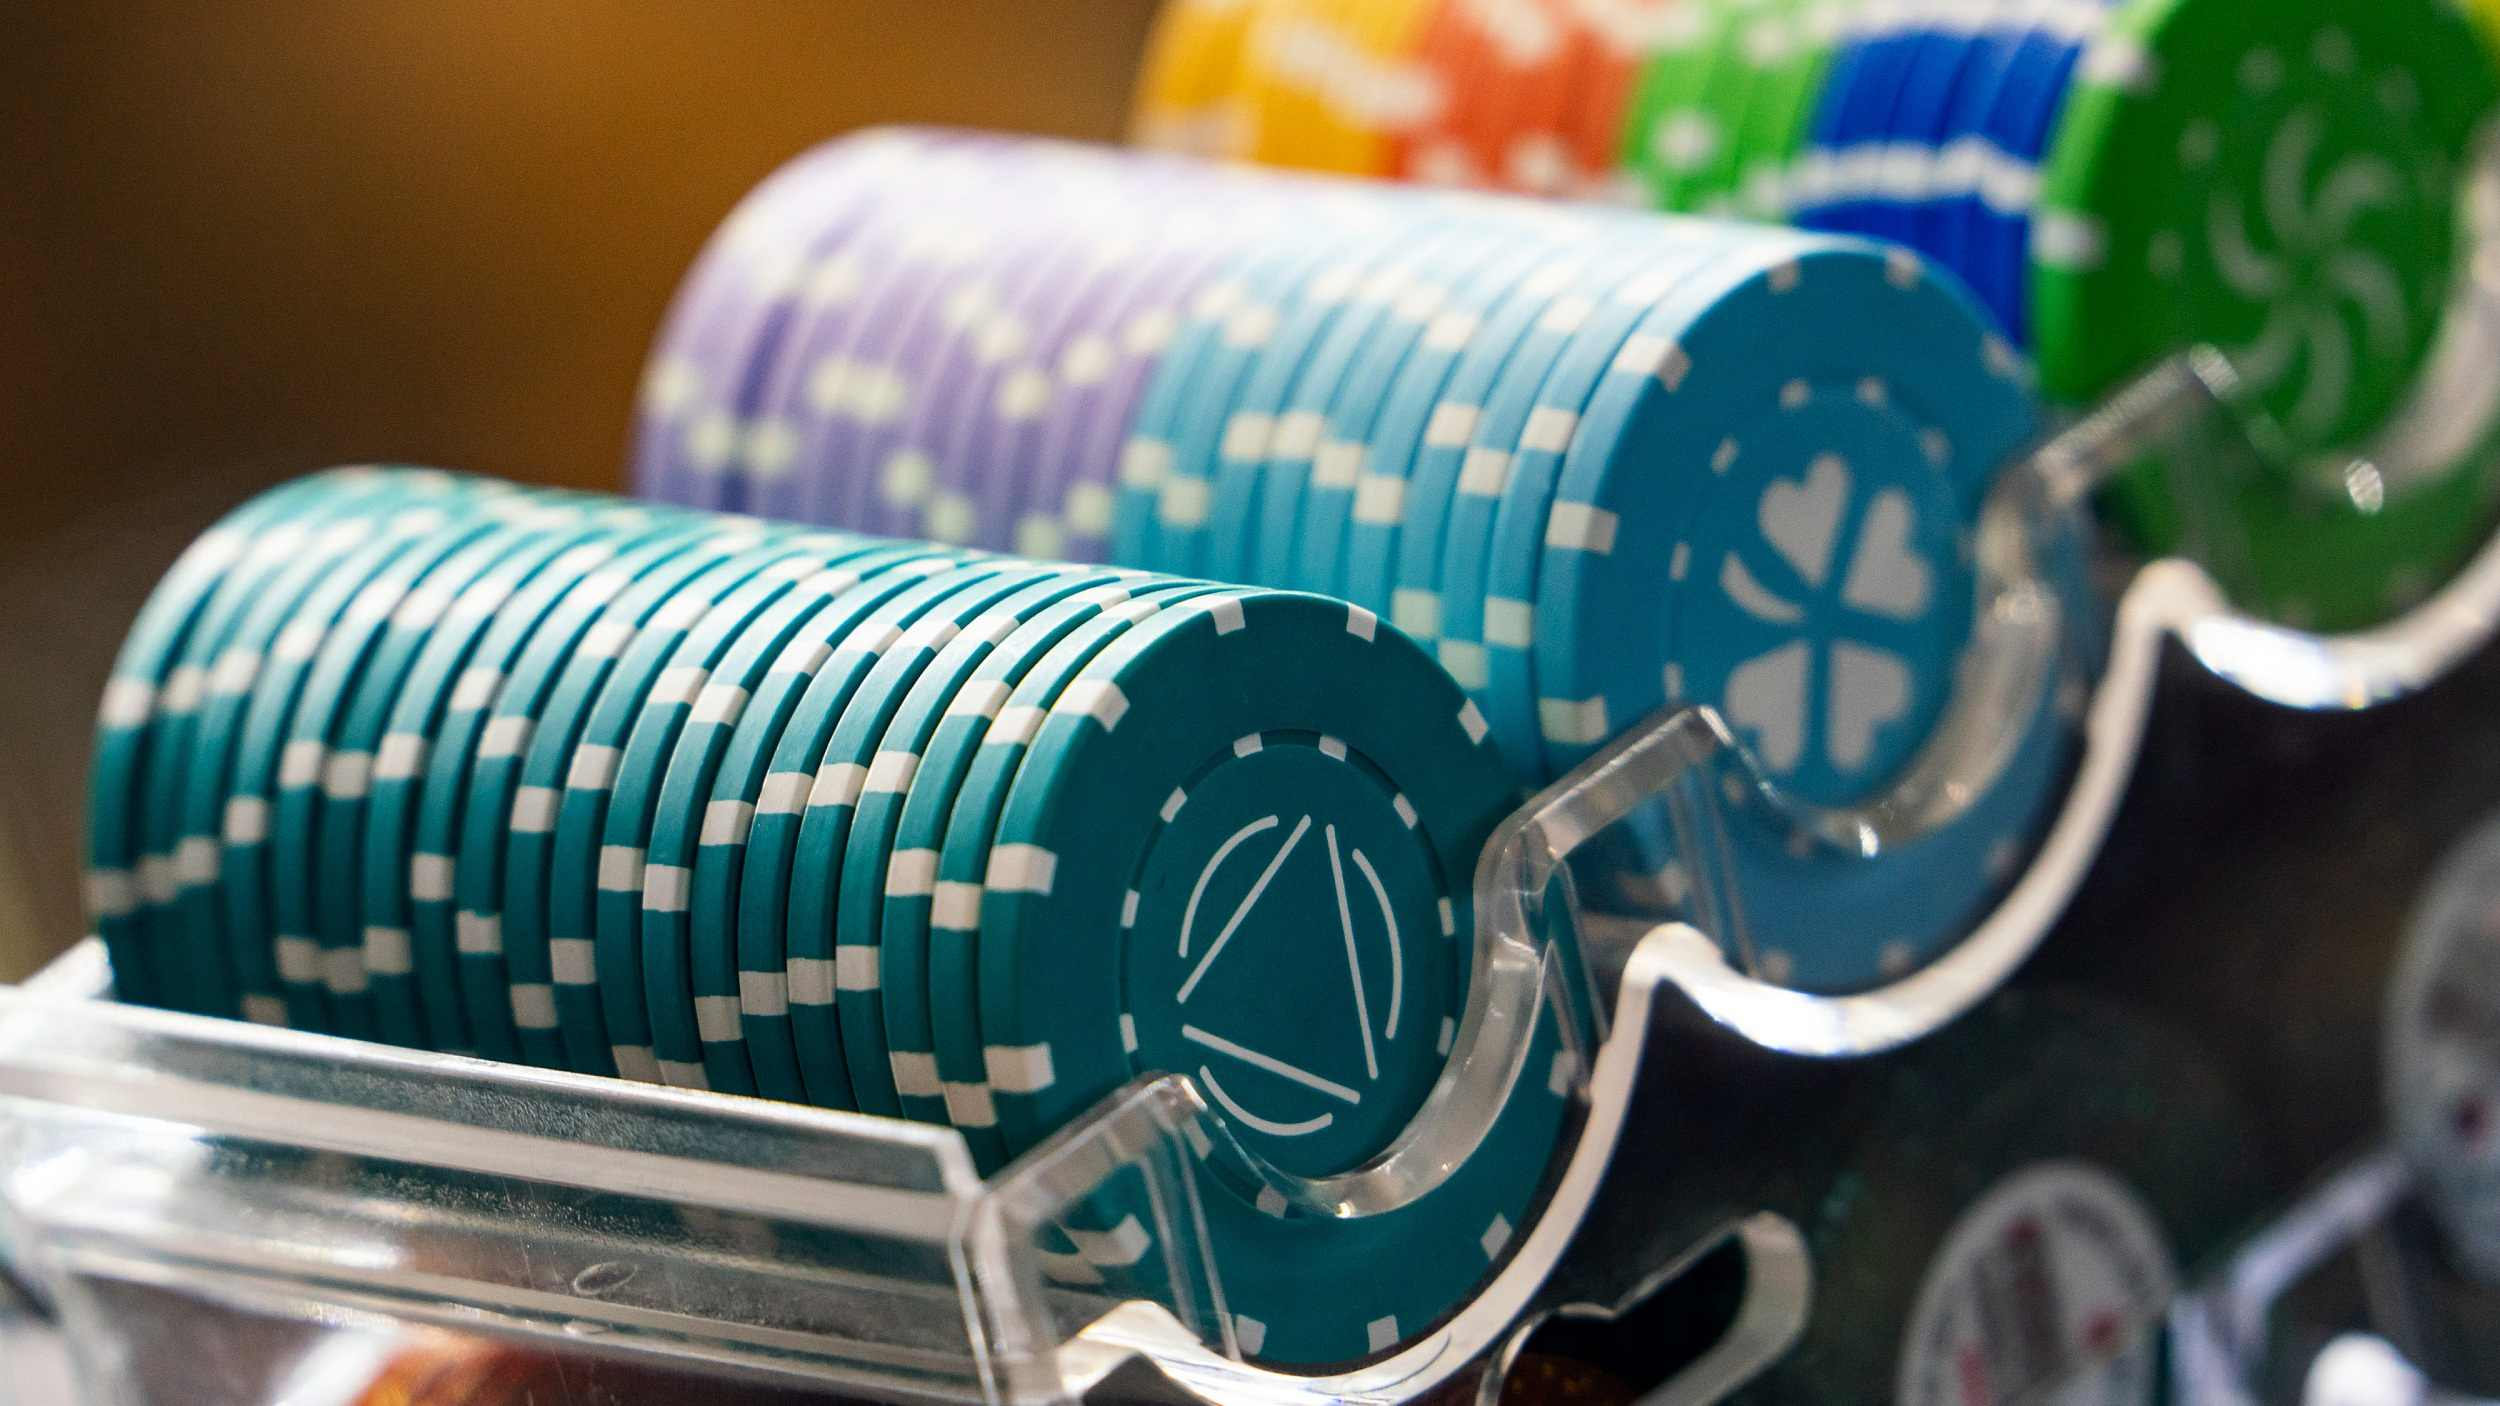 Macao's gaming revenue up by 13.6 pct to 37.58 bln USD in 2018